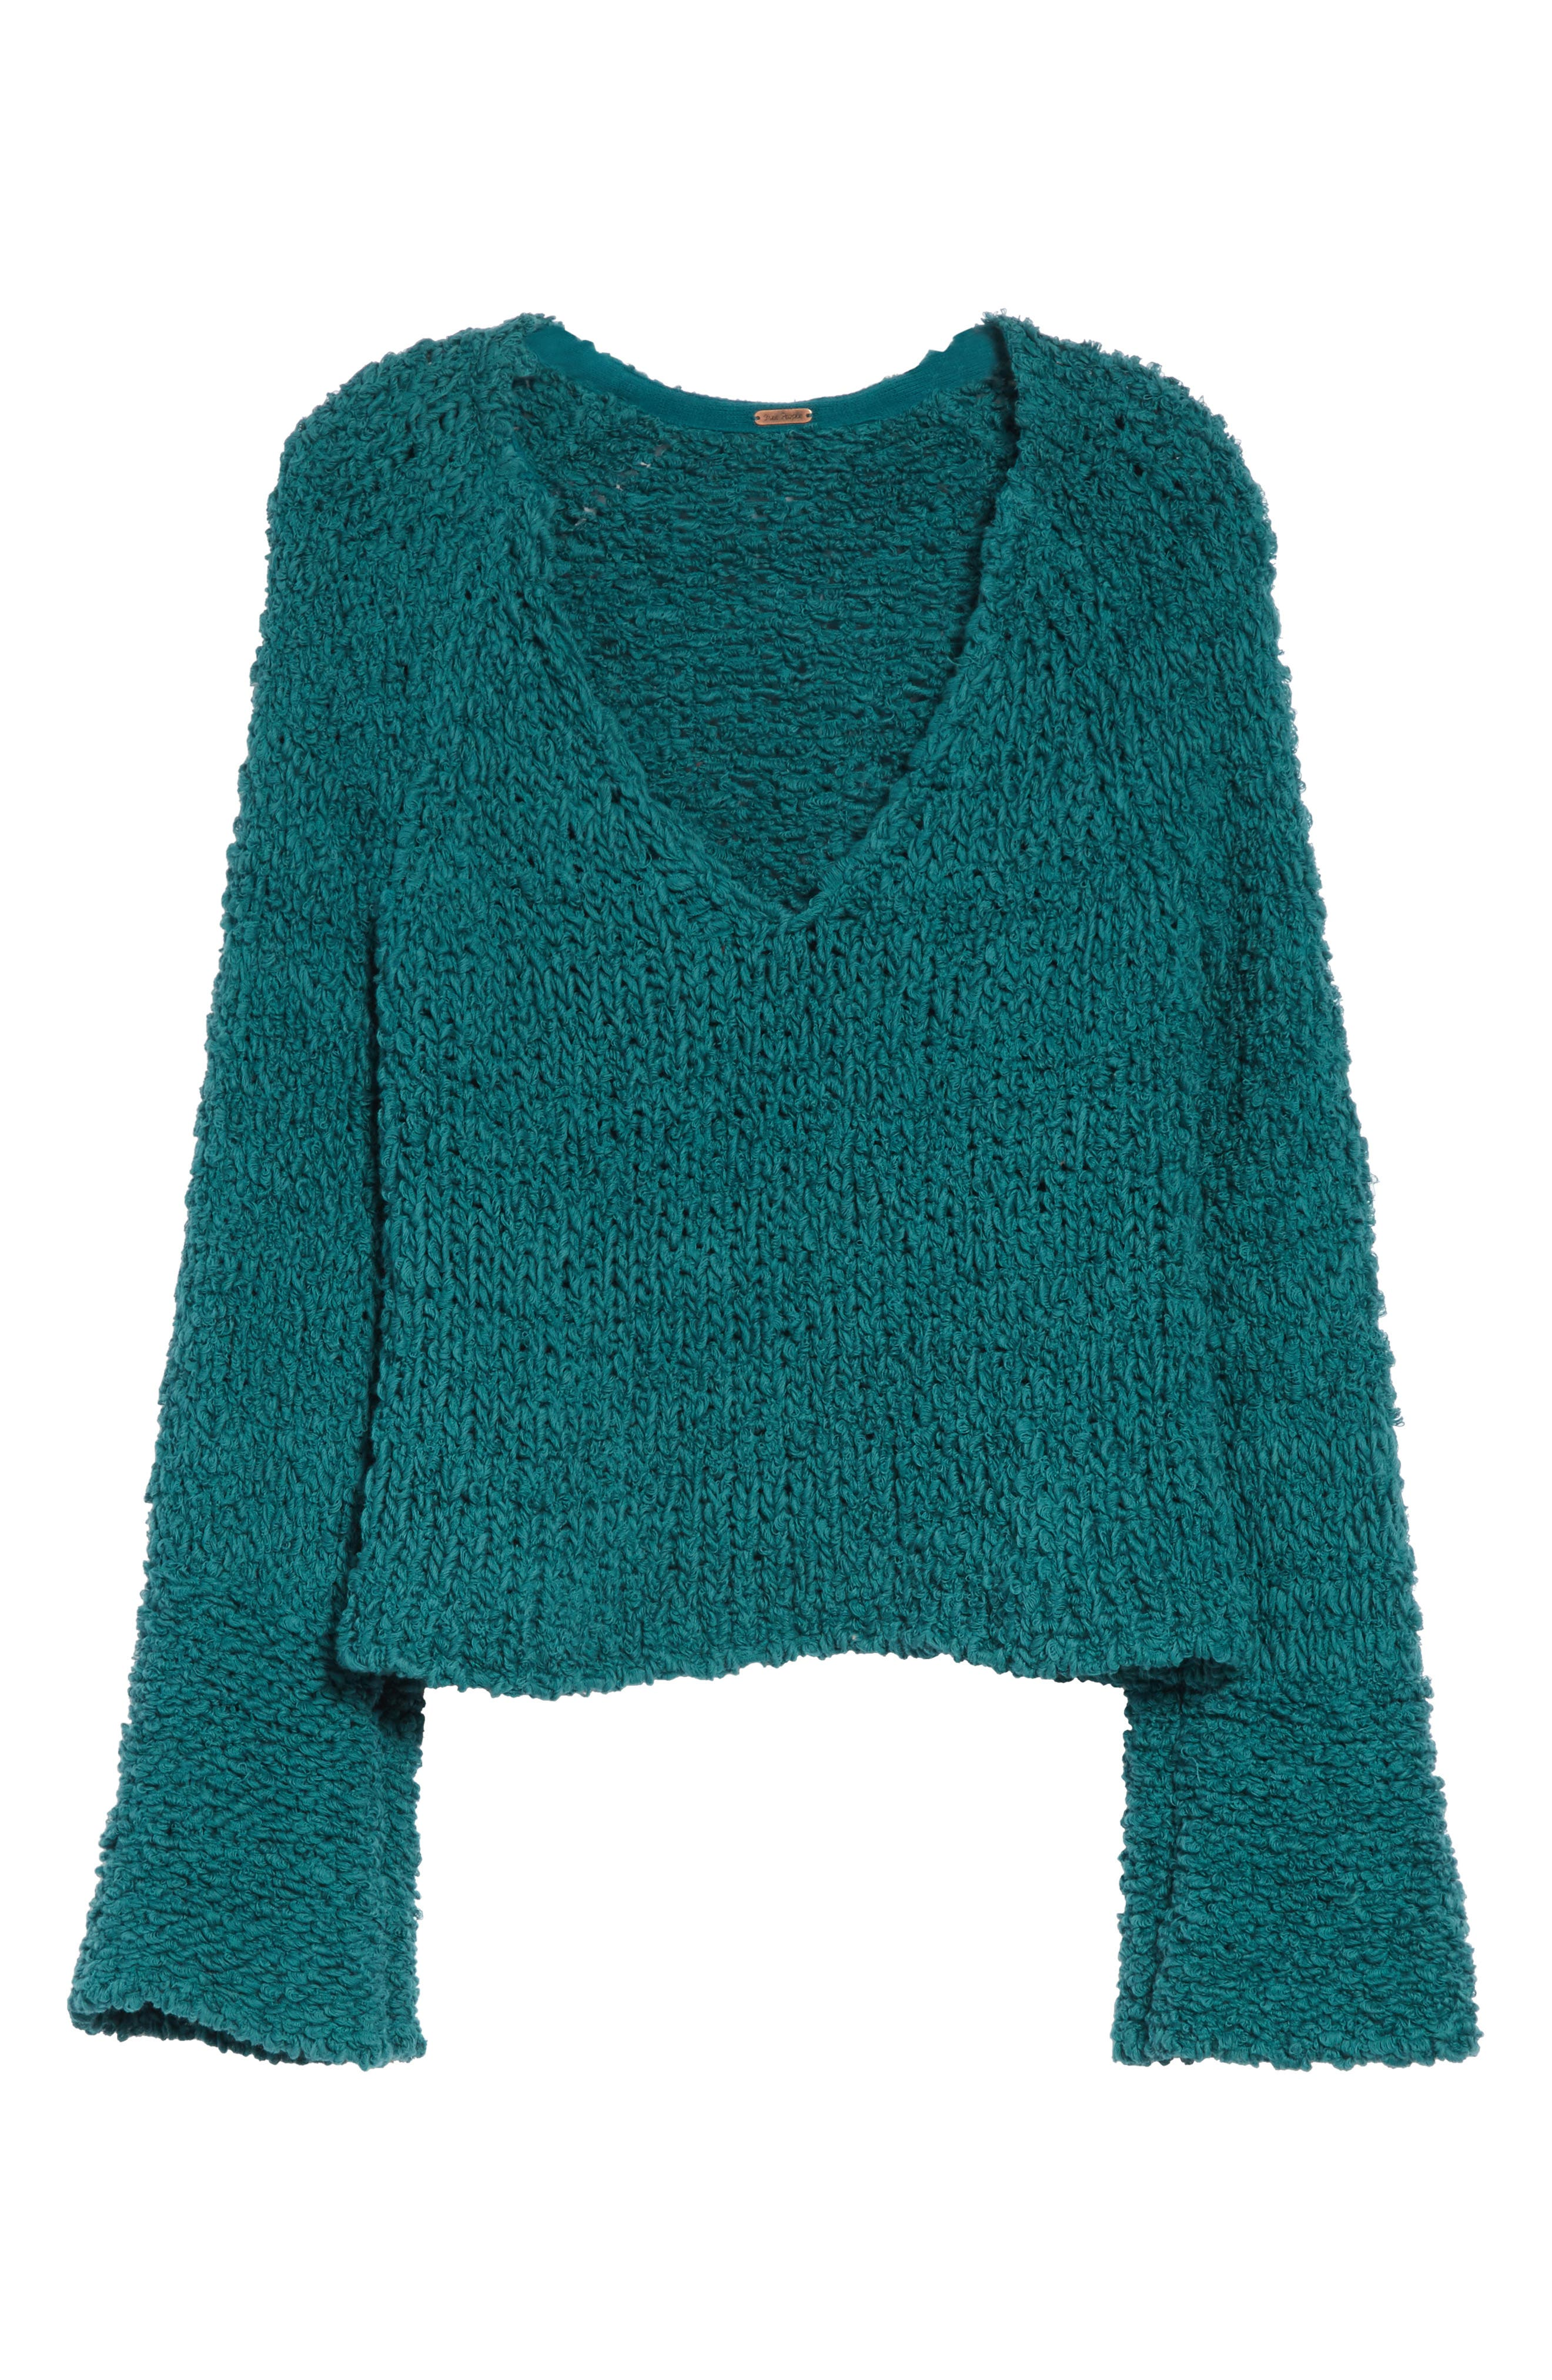 Sand Dune Sweater,                             Alternate thumbnail 6, color,                             Green